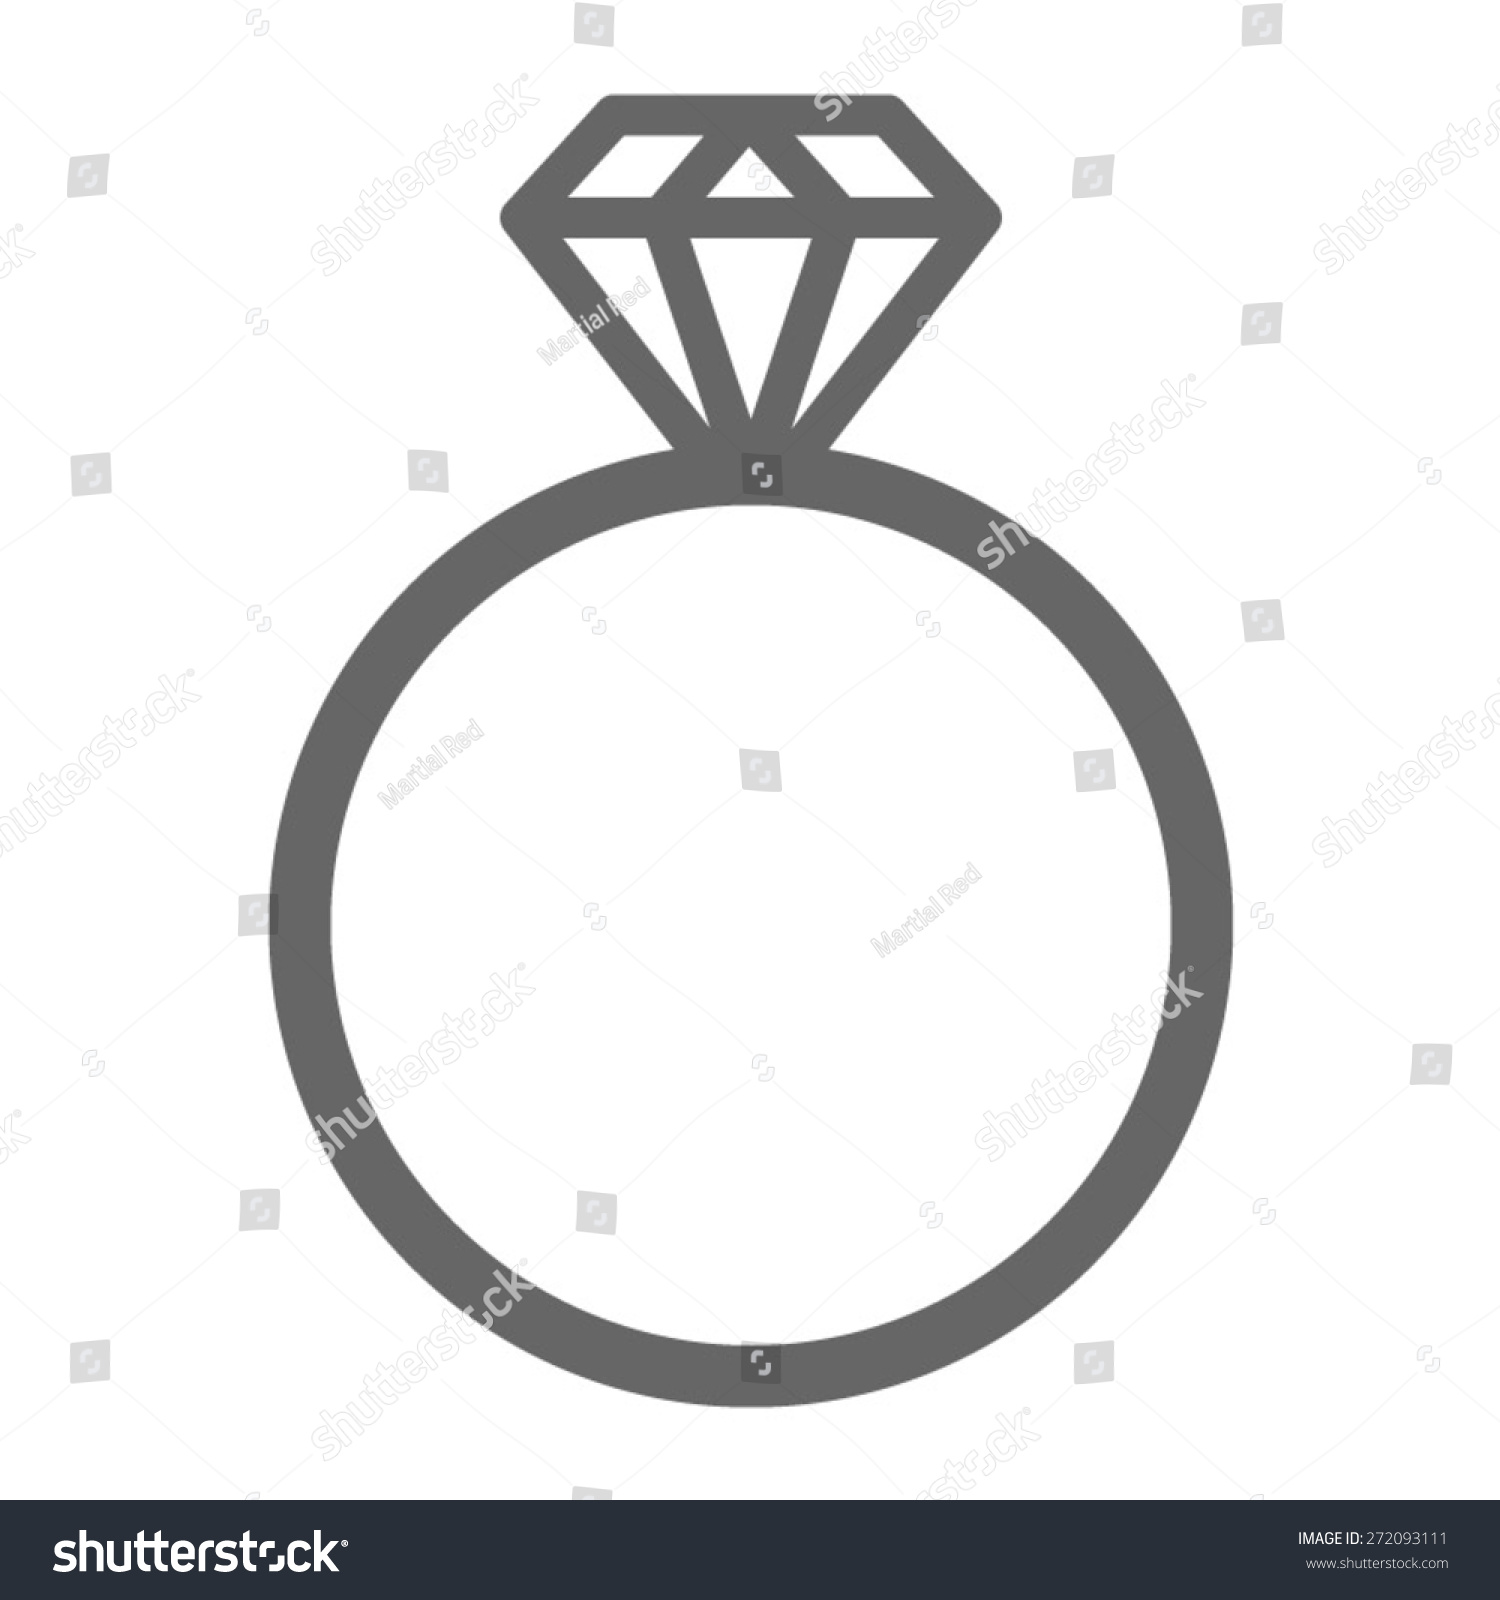 diamond ring vector icon - photo #39